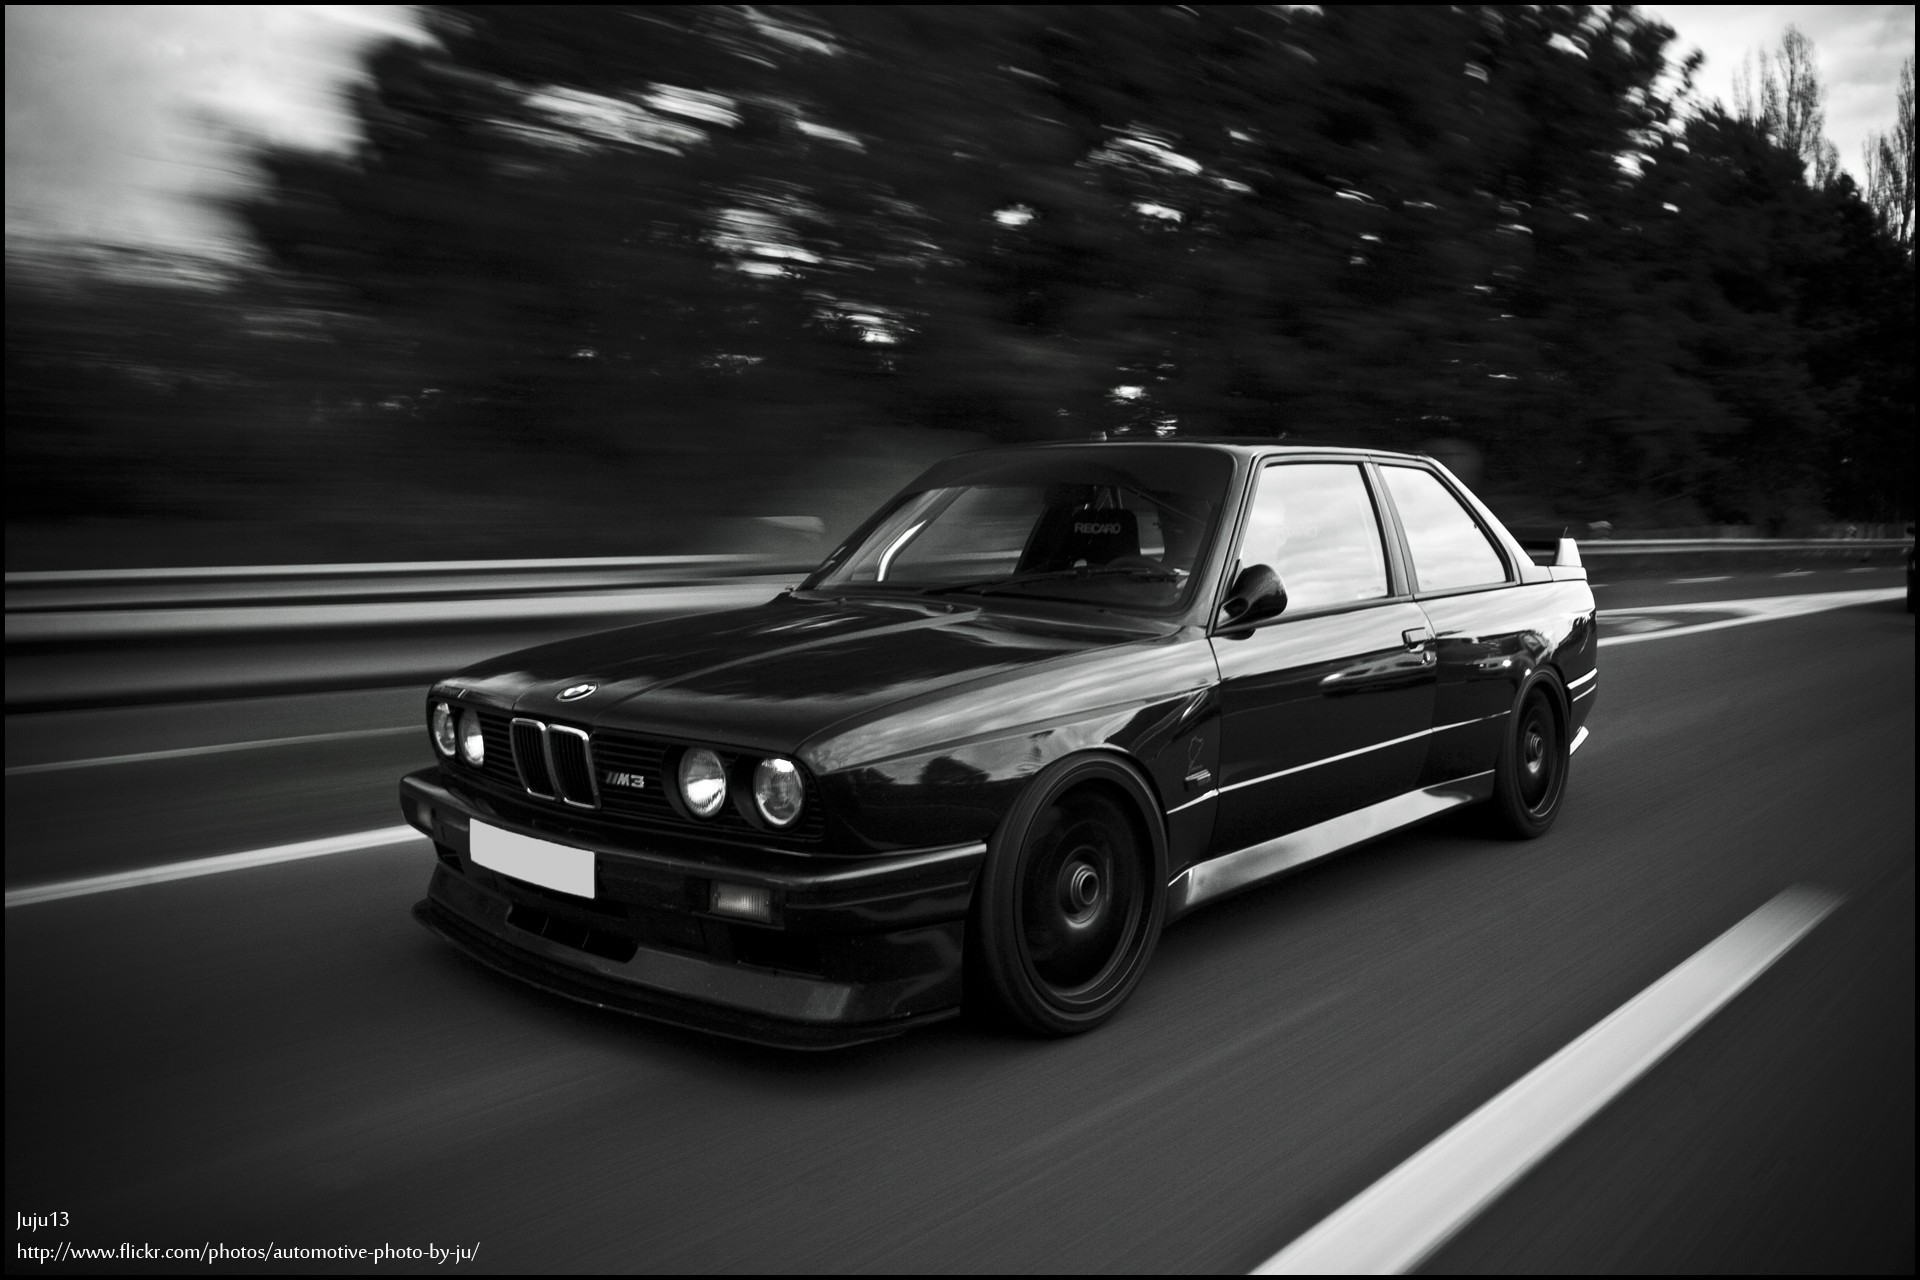 1920x1280 Bmw e30 m3 black and white wallpaper